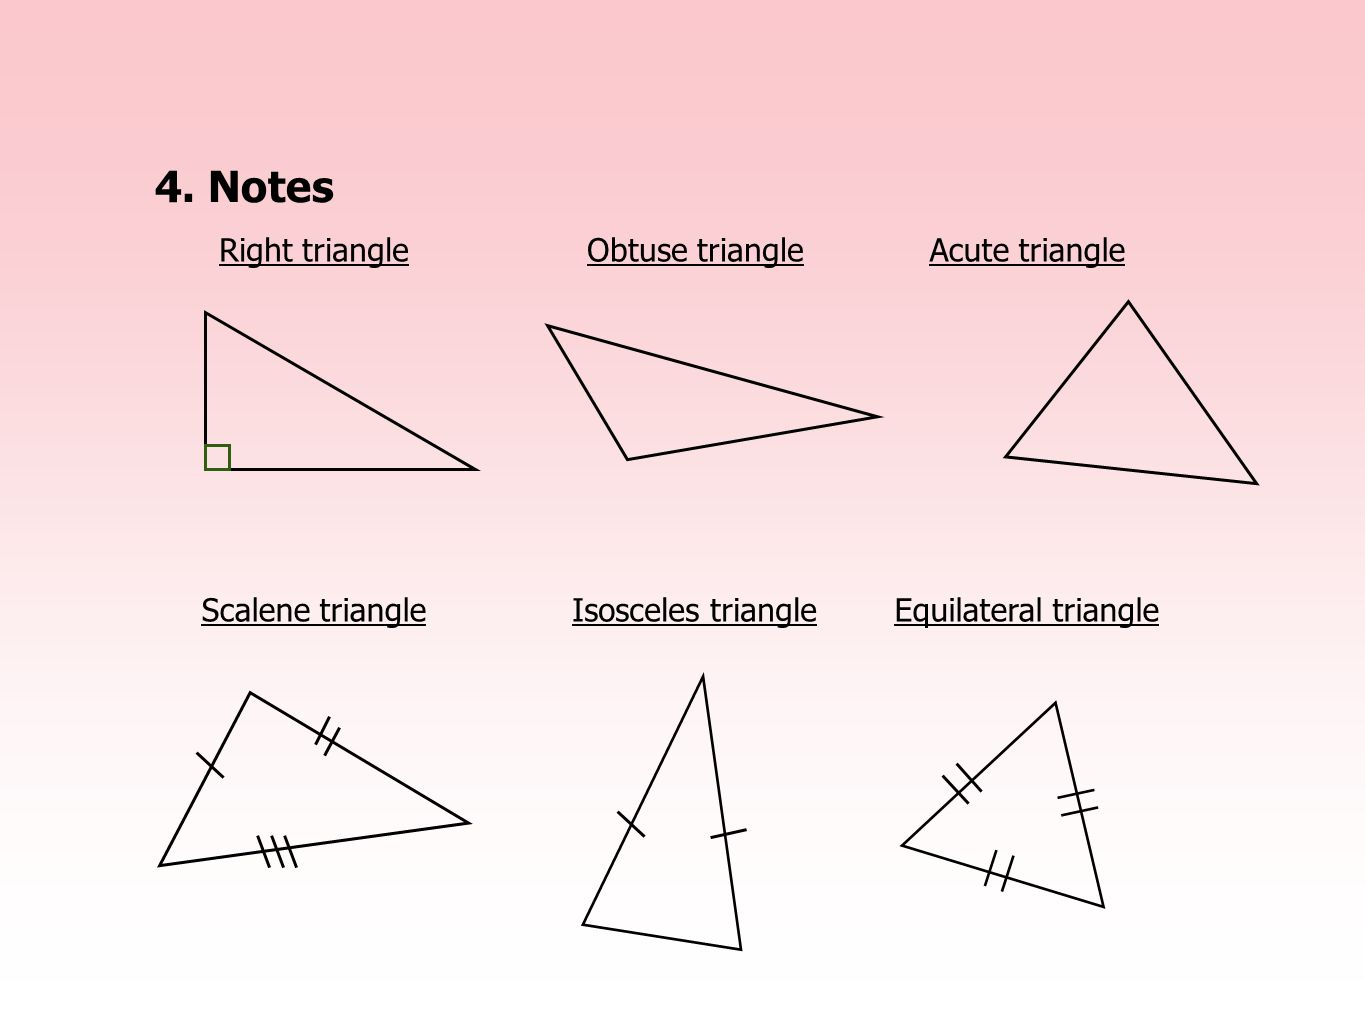 4. Notes Right triangle Obtuse triangle Acute triangle